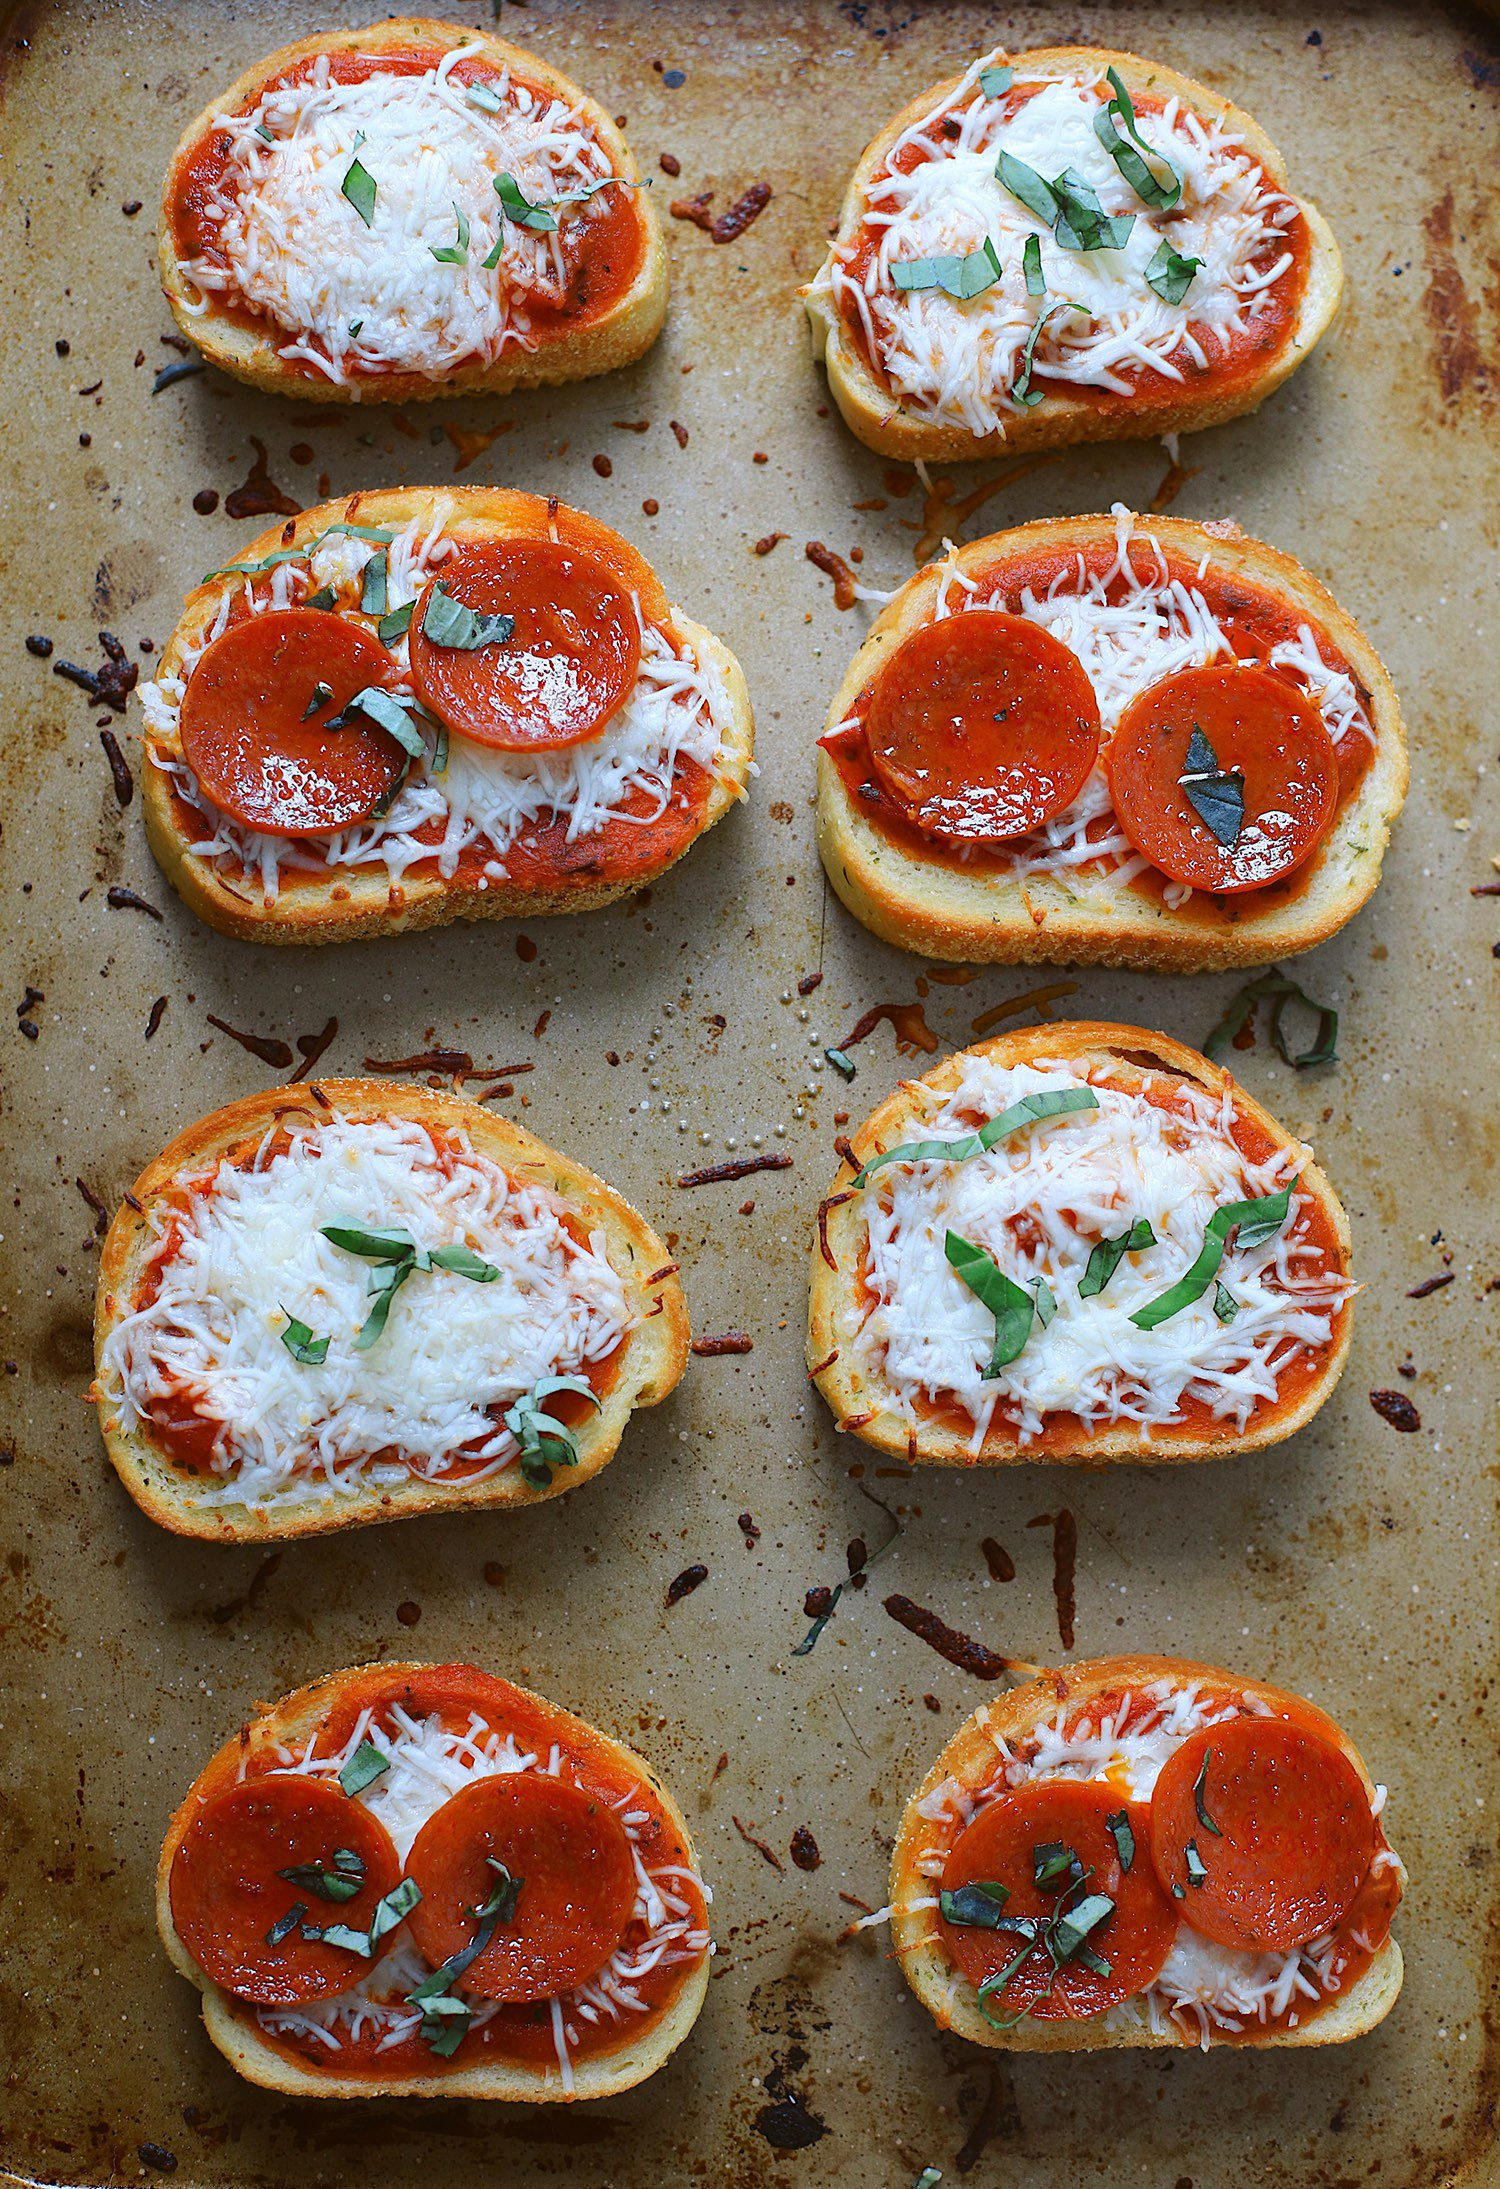 Simple and Easy Dinner Idea for the family! Whether Vegetarian or a meat lover, you can't go wrong with this garlic toast pizza recipe! Start with just 3 ingredients for a #preplessmeals dinner idea, and even the kids can make it! Frozen garlic toast (we're sharing a few options if you don't have it on-hand), #Prego Traditional Italian Tomato Sauce and mozzarella cheese make for a simple and delicious meal any time of day. Add in some pepperoni or other toppings and some fresh herbs to create any flavor combination or use up leftovers. Perfect for a quick lunch or dinnertime ideas when you're short on time.